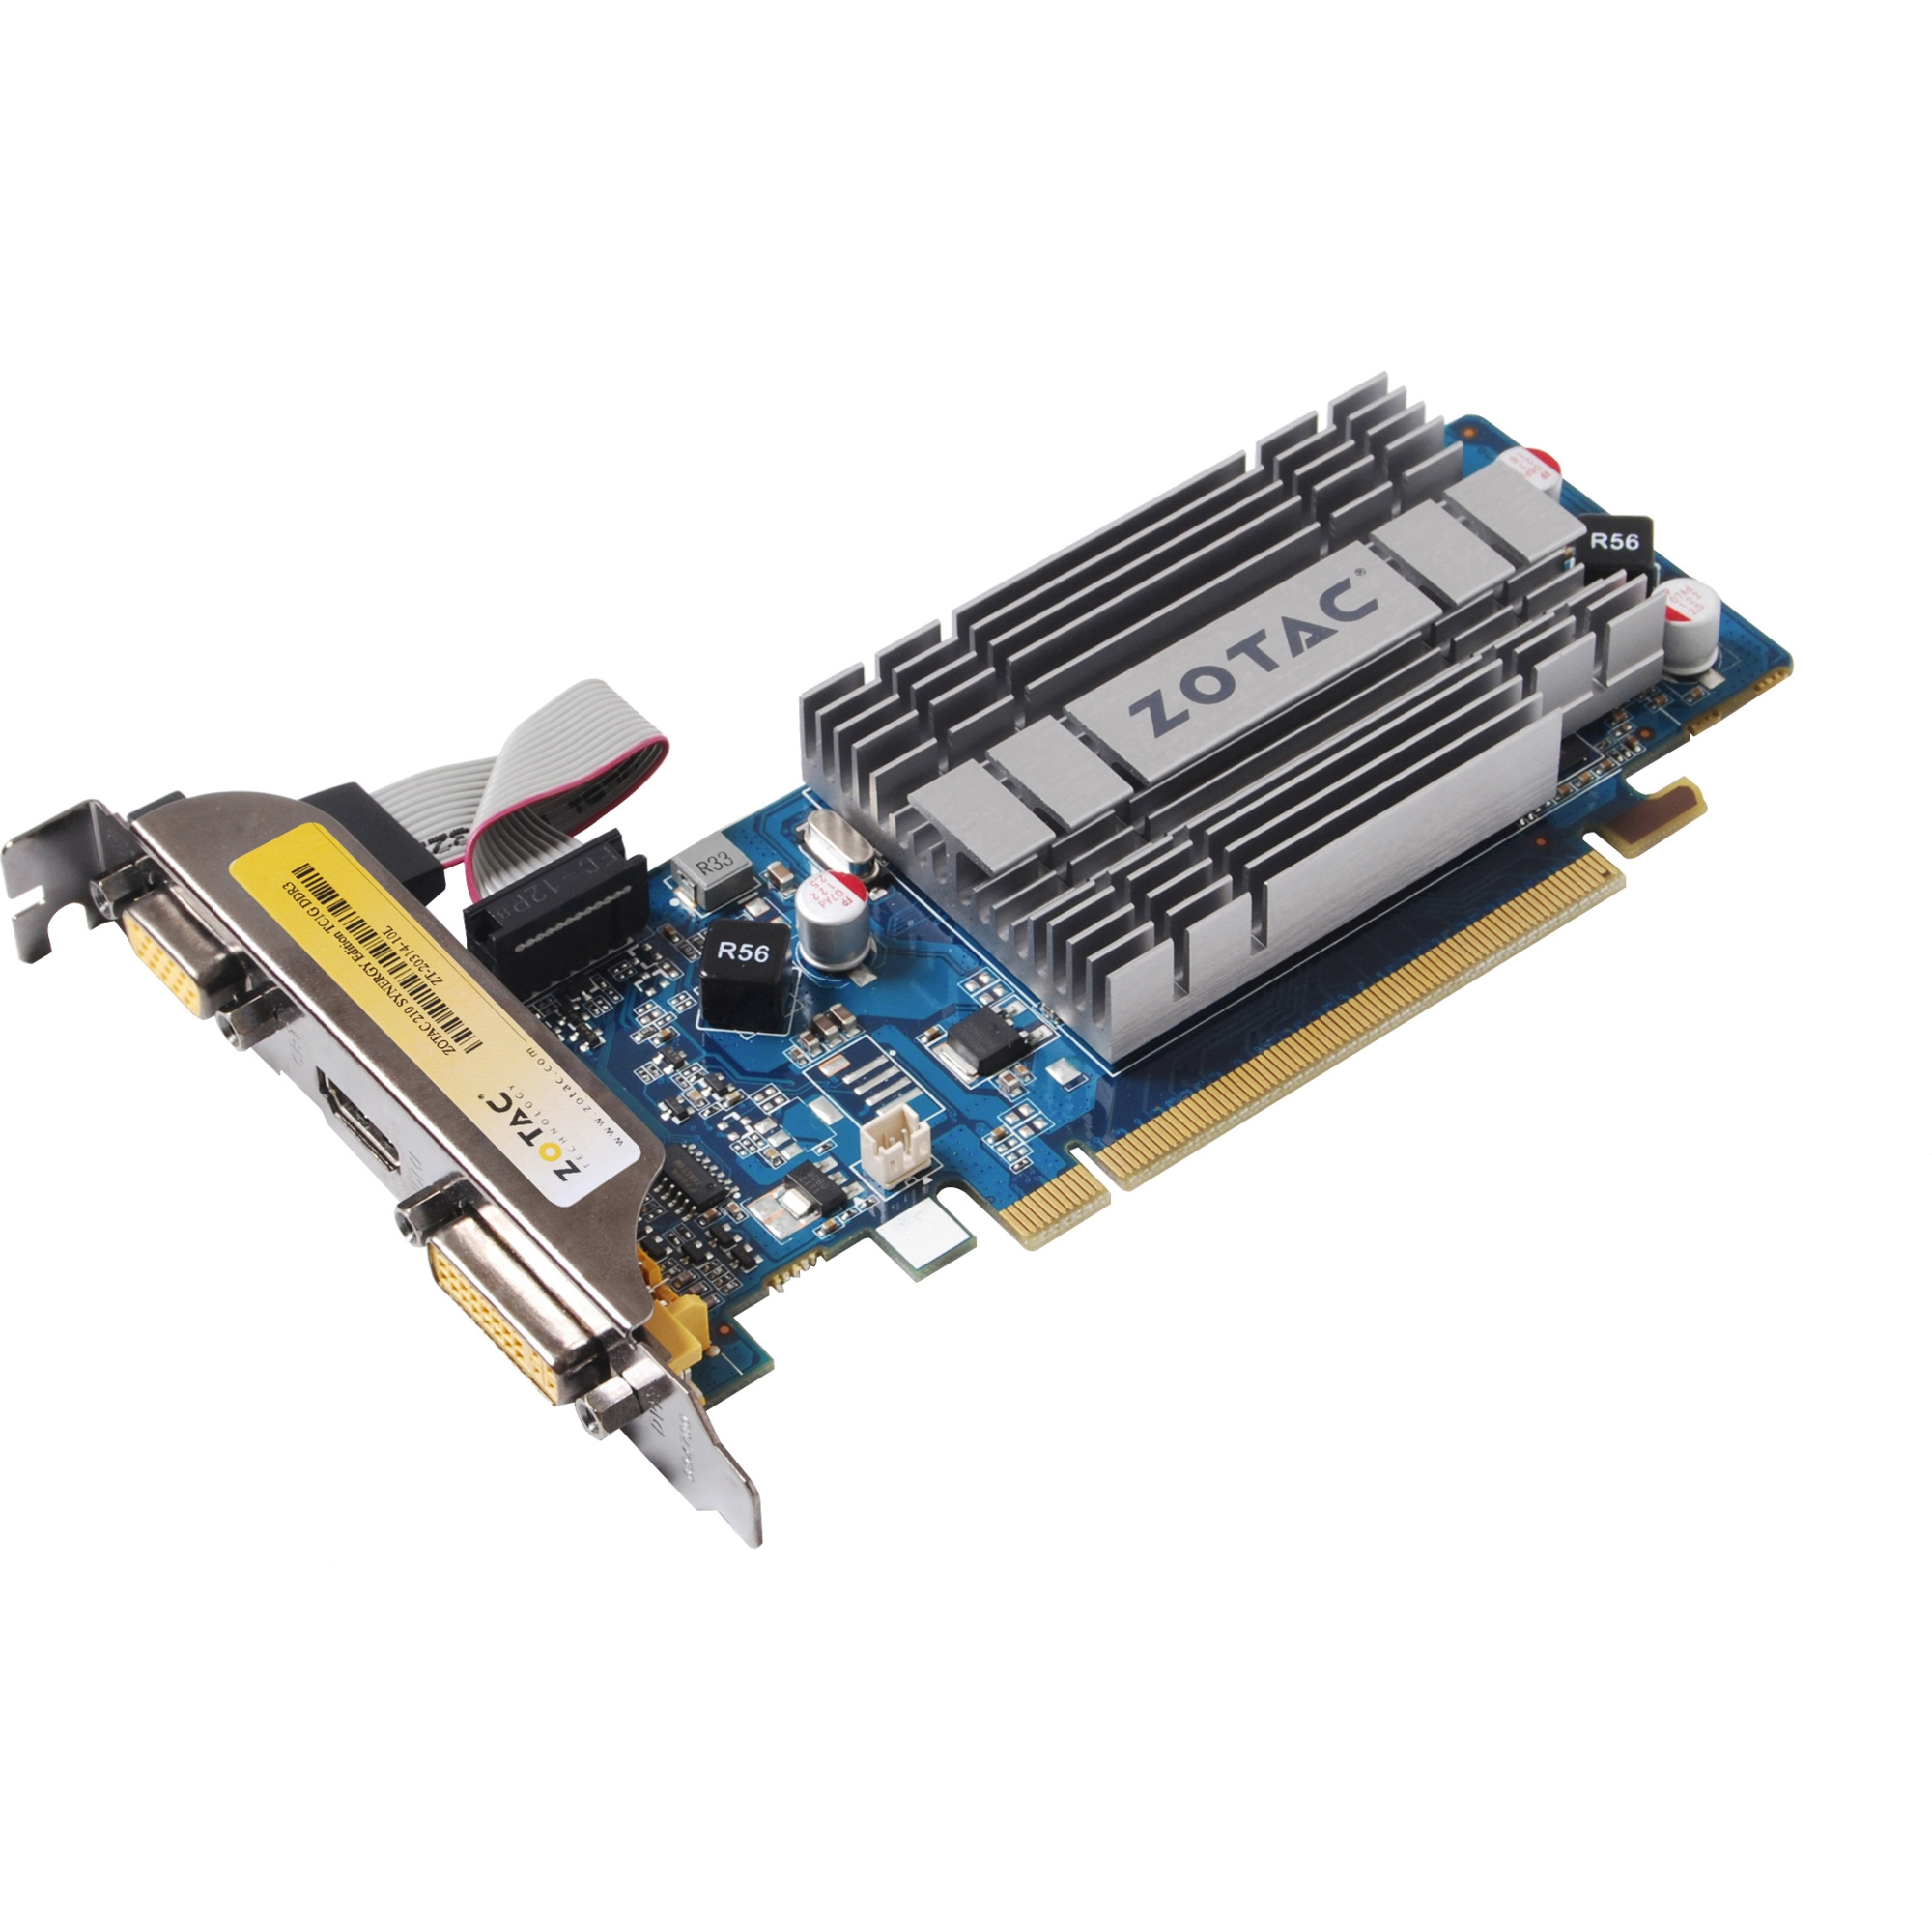 GeForce 210 Graphic Card - 520 MHz Core - 1 GB DDR3 SDRAM - PCI Express 2.0 x16 - 1200 MHz Memory Clock - 2560 x 1600 - Passive Cooler - DirectCompute DirectX 10.1 OpenGL 3.2 - HDMI - DVI - VGA